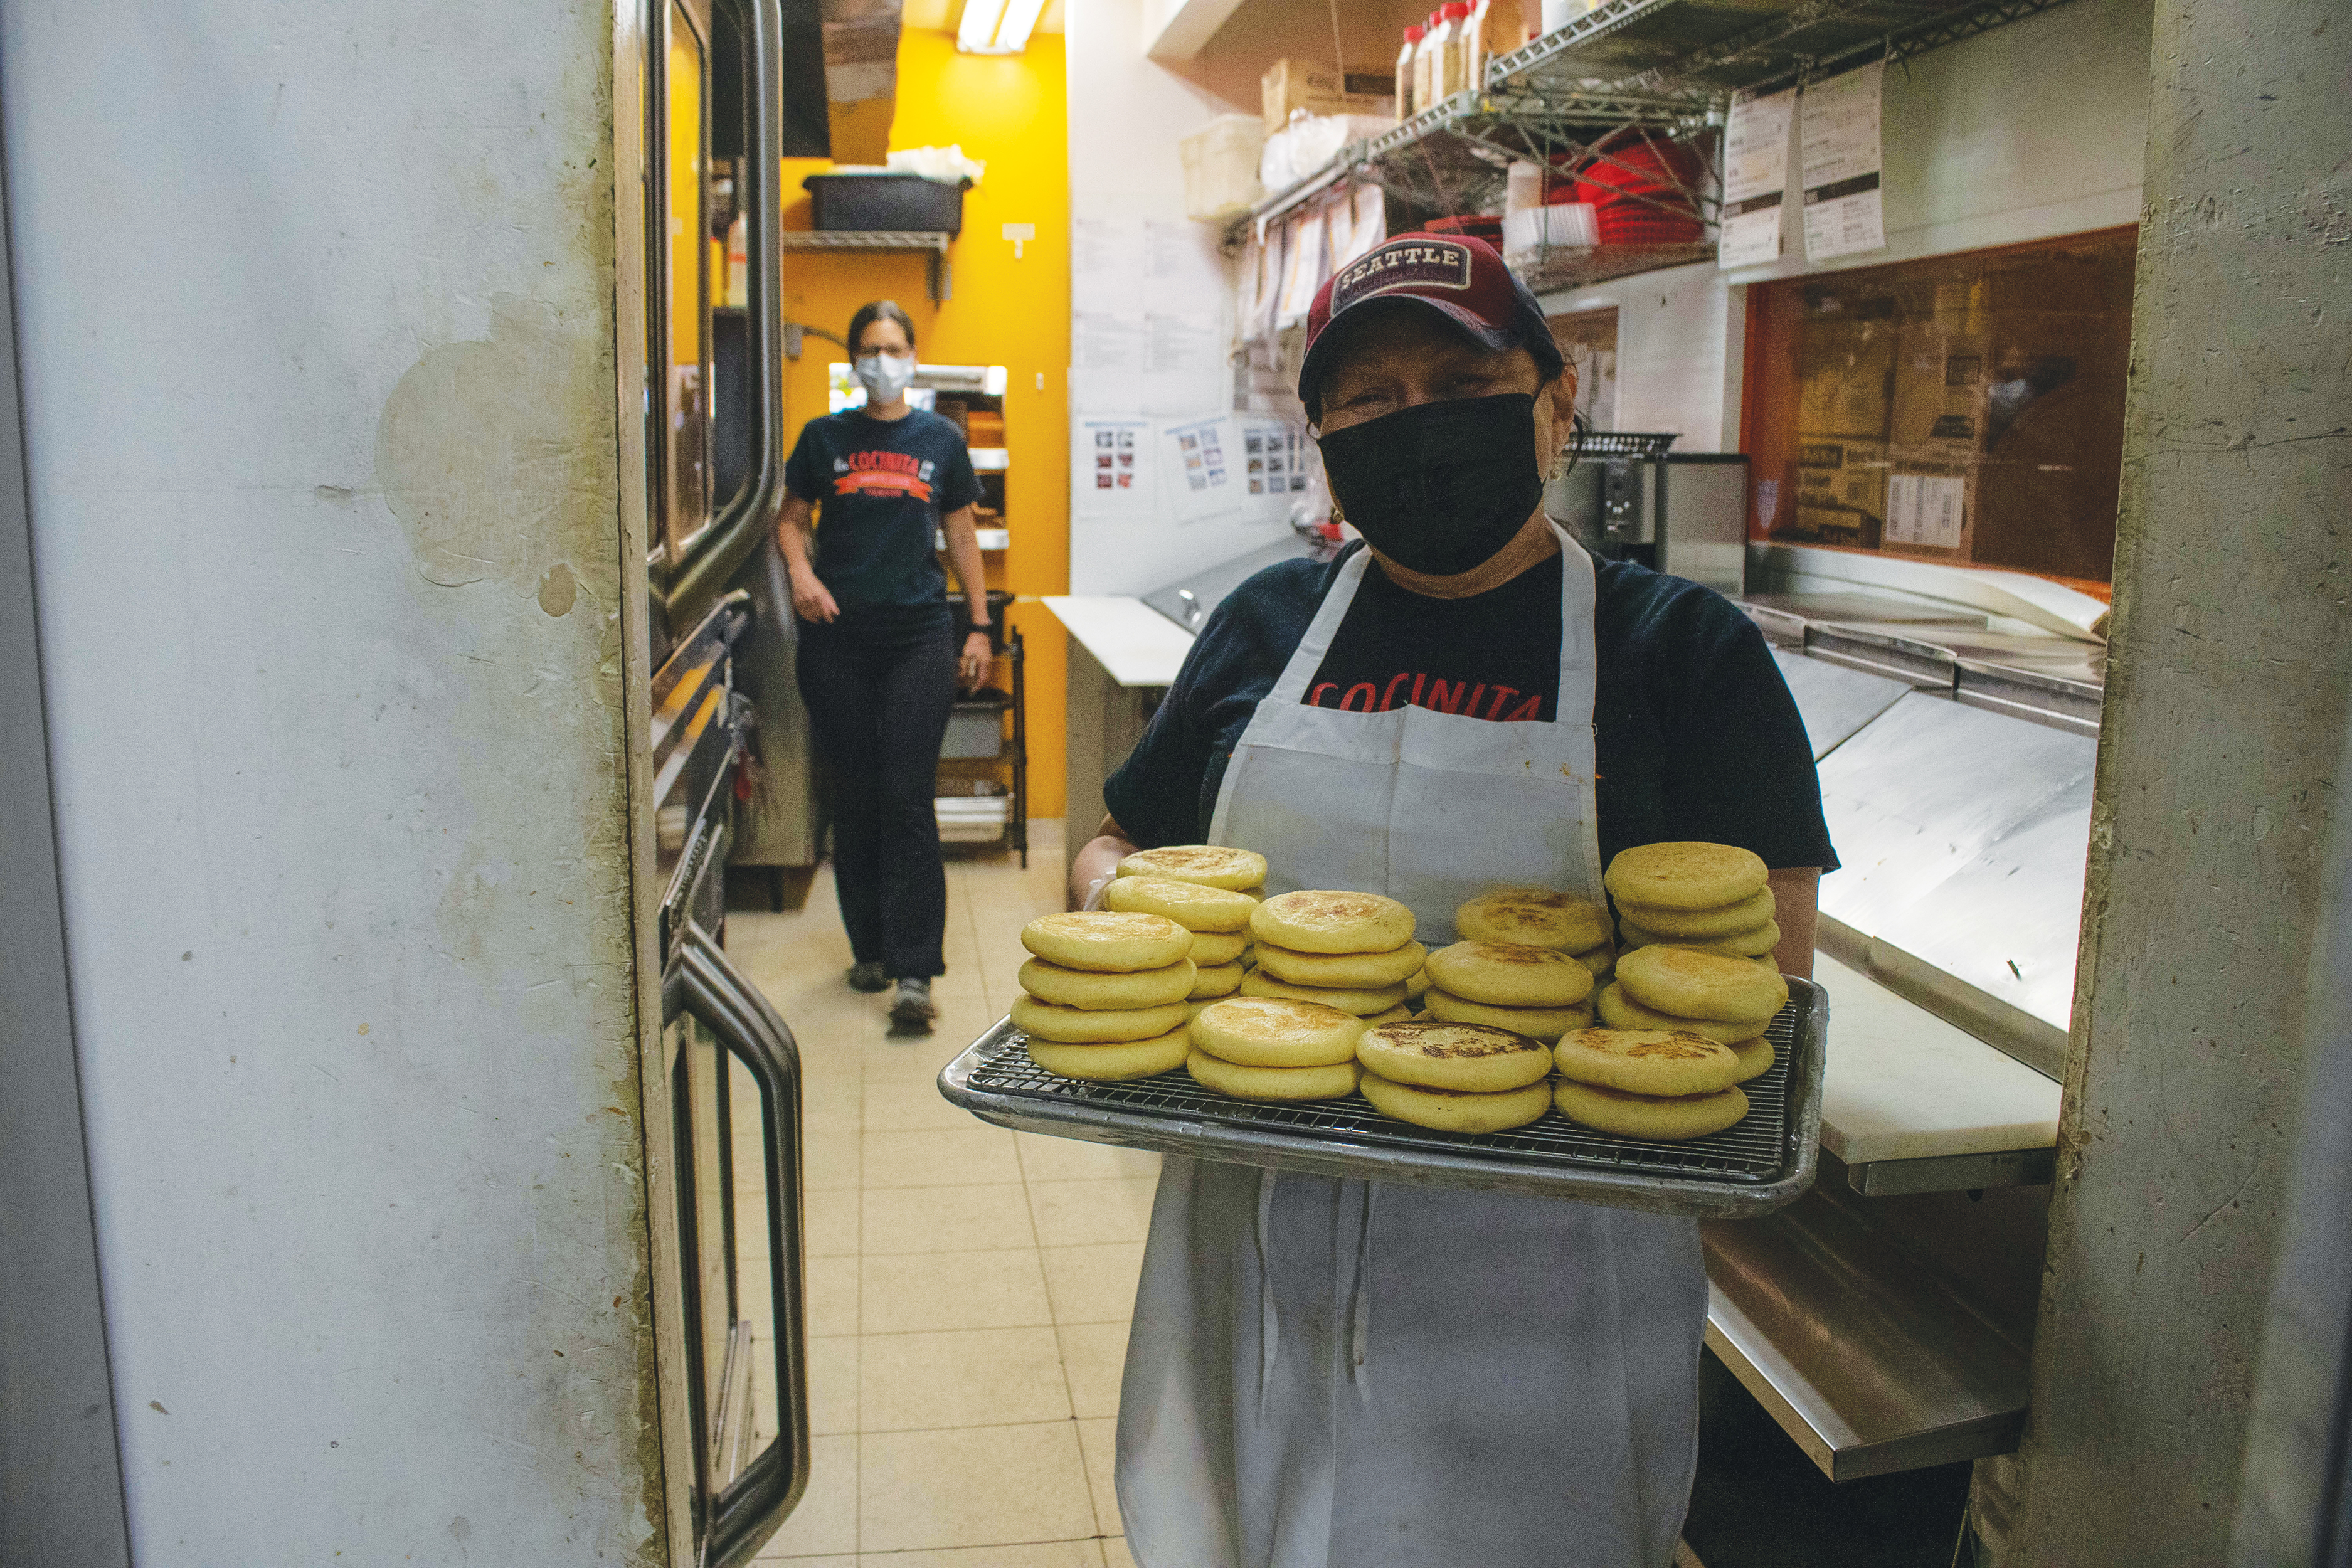 An employee holding a tray of arepas in the kitchen